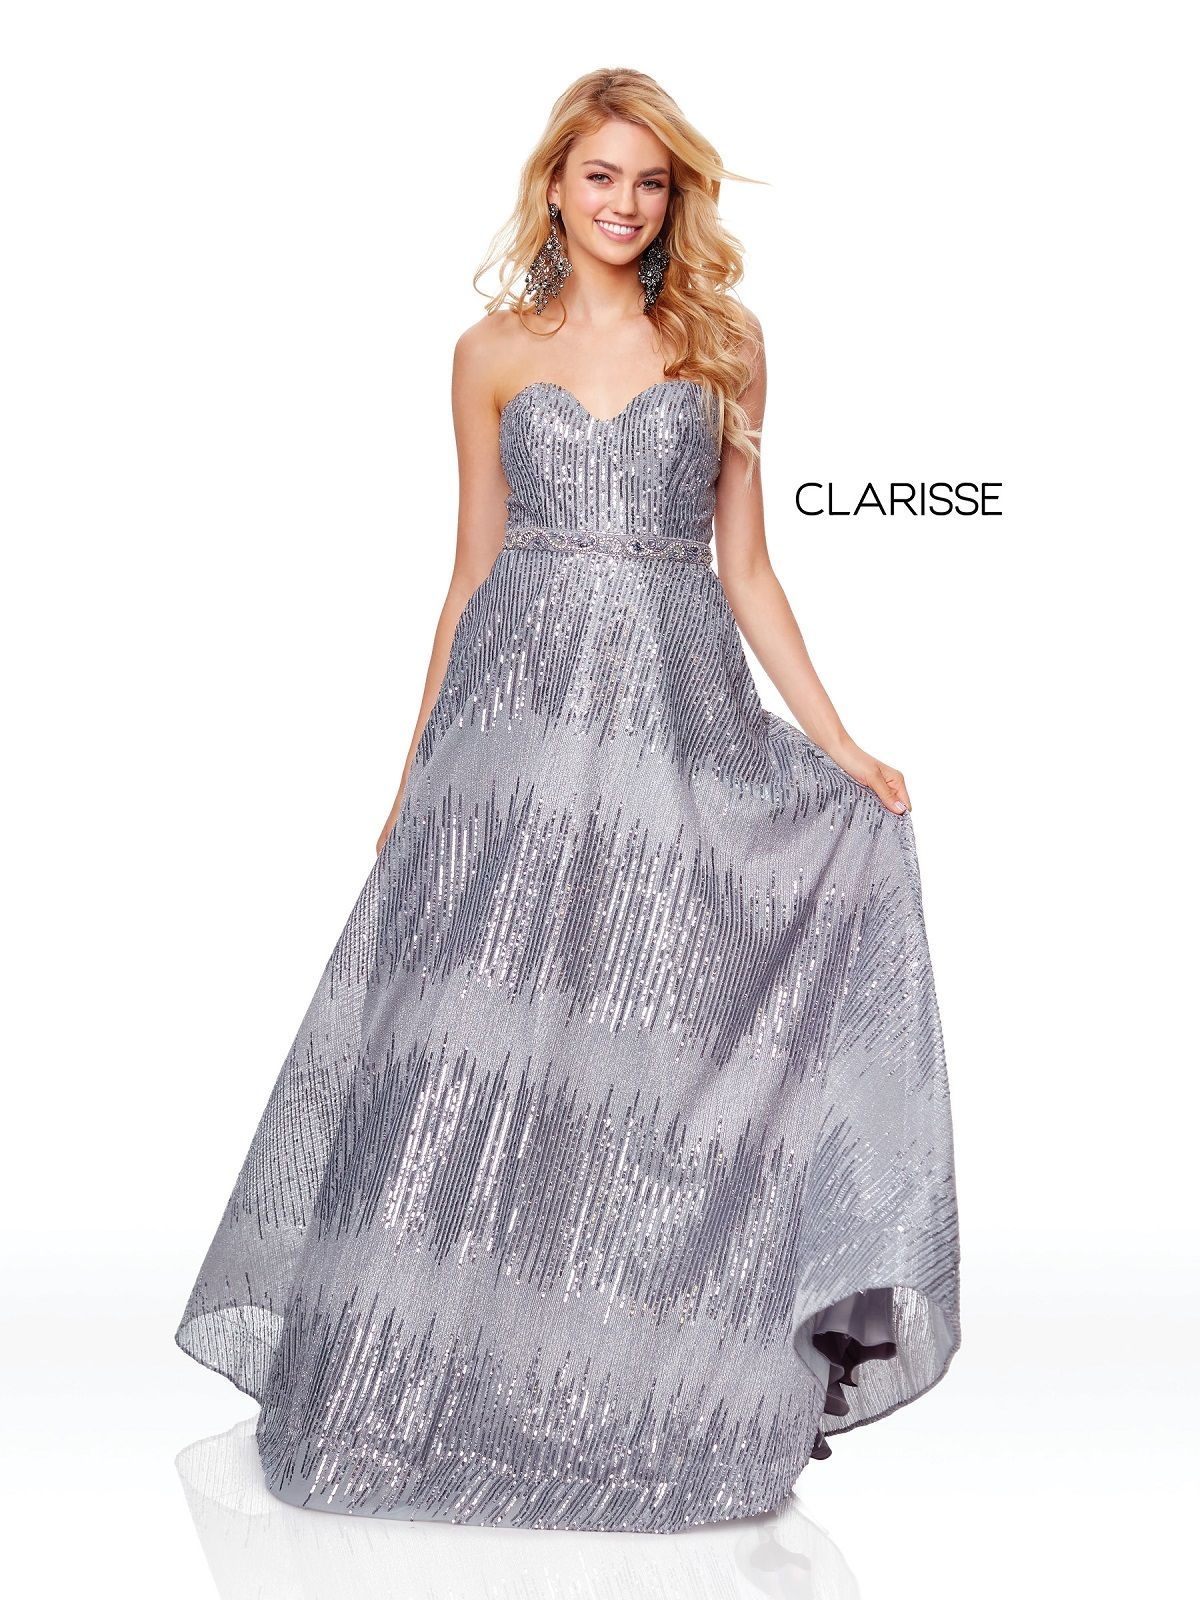 83d14105f64 Clarisse 3714 Pewter Sequined Prom Dress